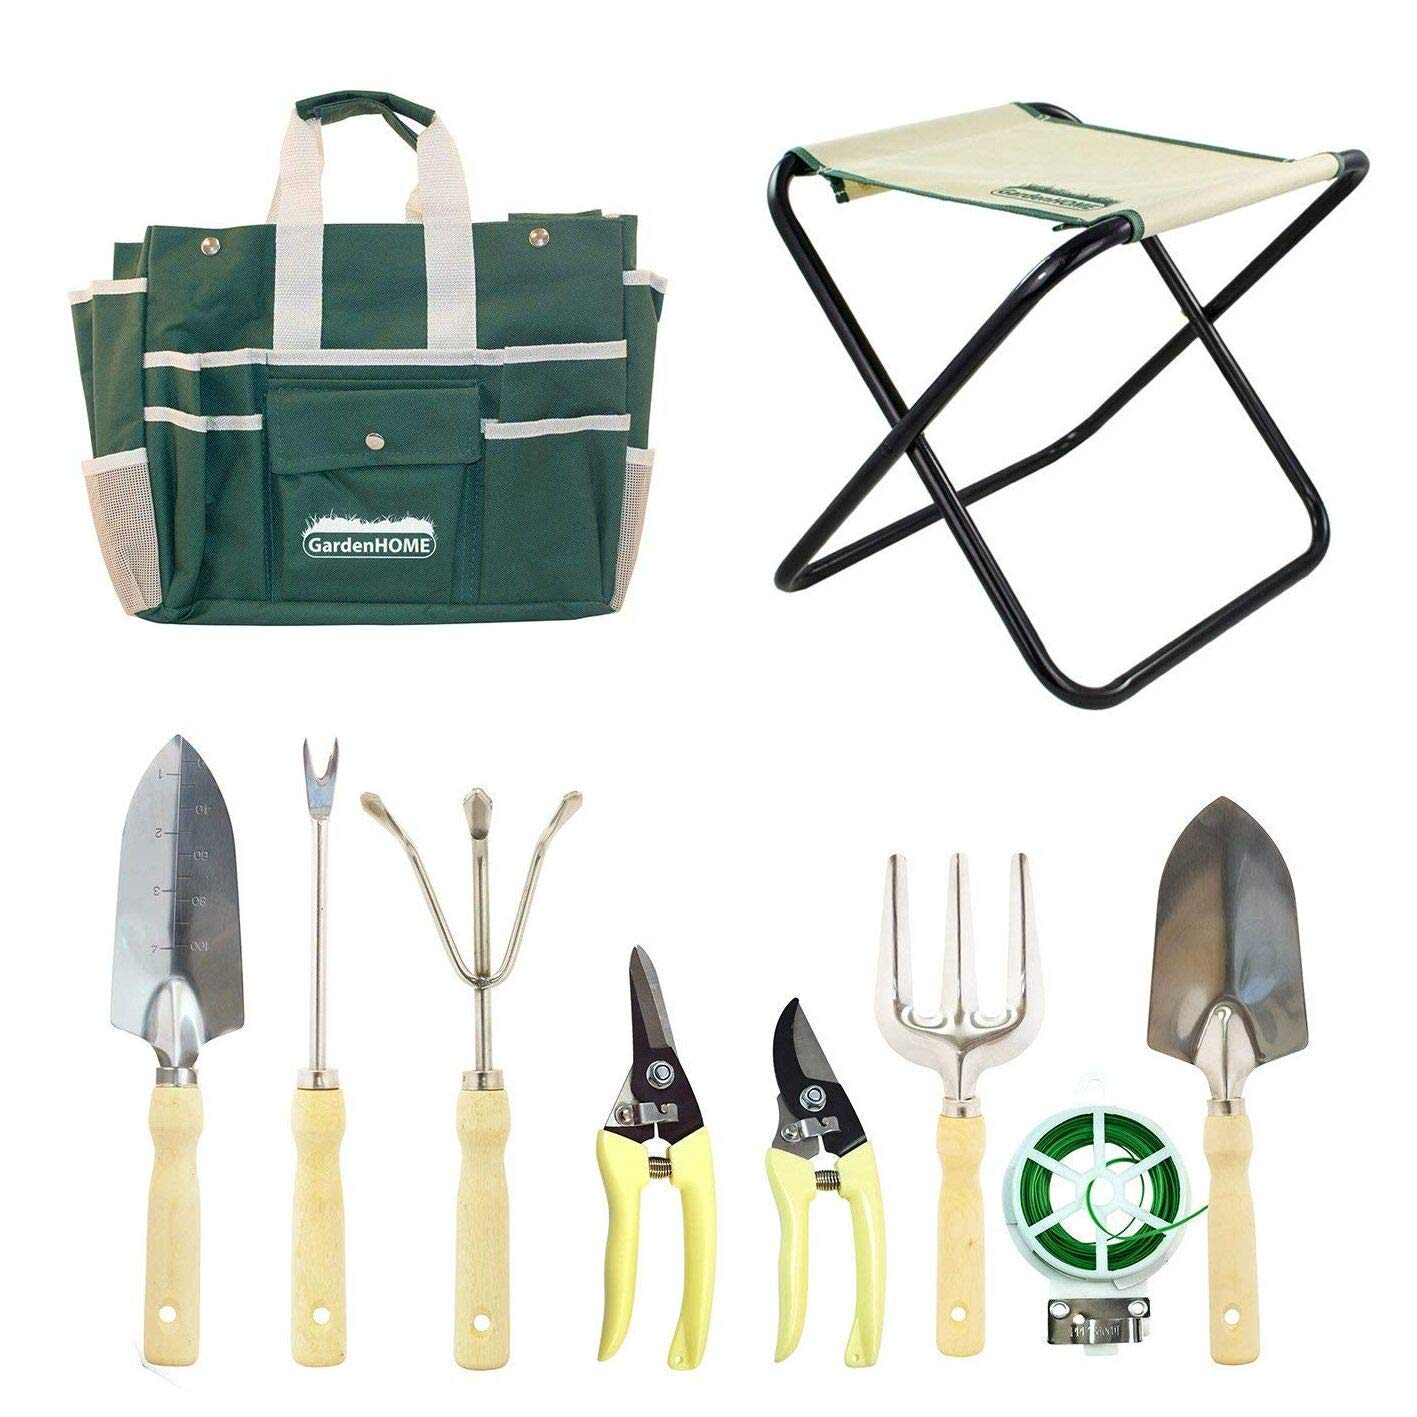 Garden Tool Set 10 Piece with Folding Stool, Storage Bag, 5 Heavy Duty Stainless Steel Garden Tools, 2 Pruners and 1 Roll of 100 ft